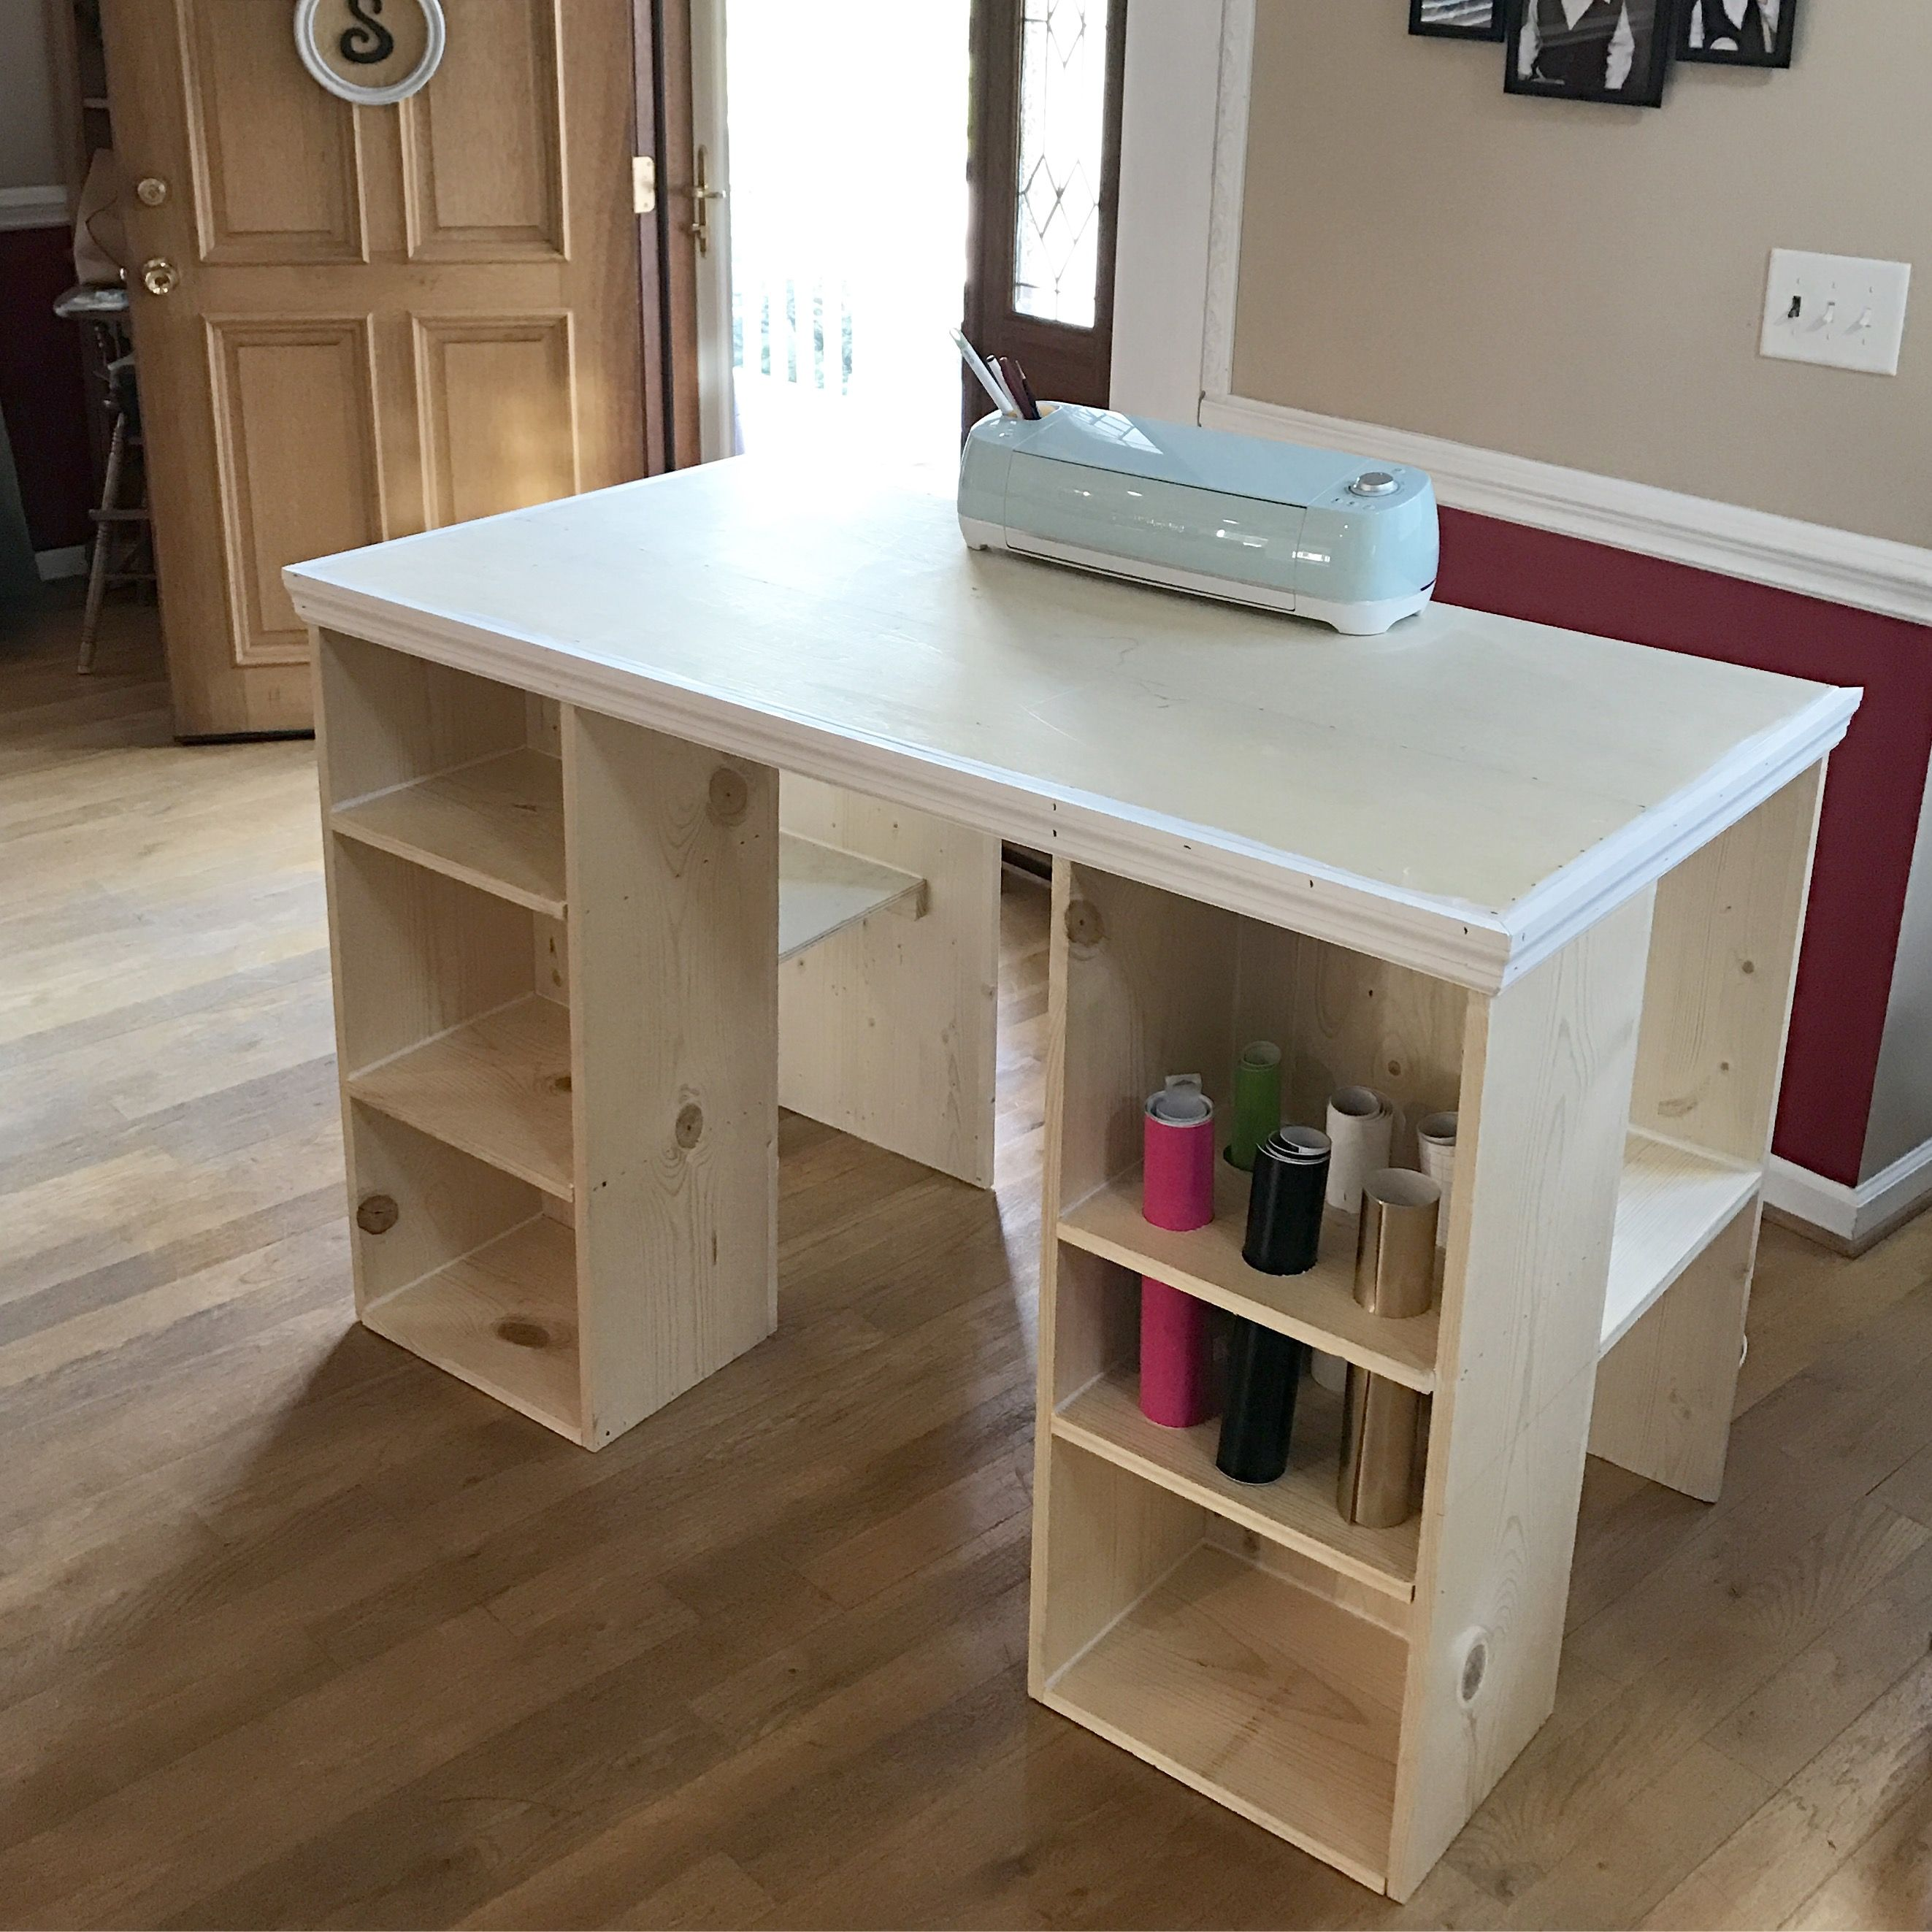 Diy Cricut Craft Table My Hubby S Awesome Just Add Paint Craft Table Diy Craft Table Diy Table